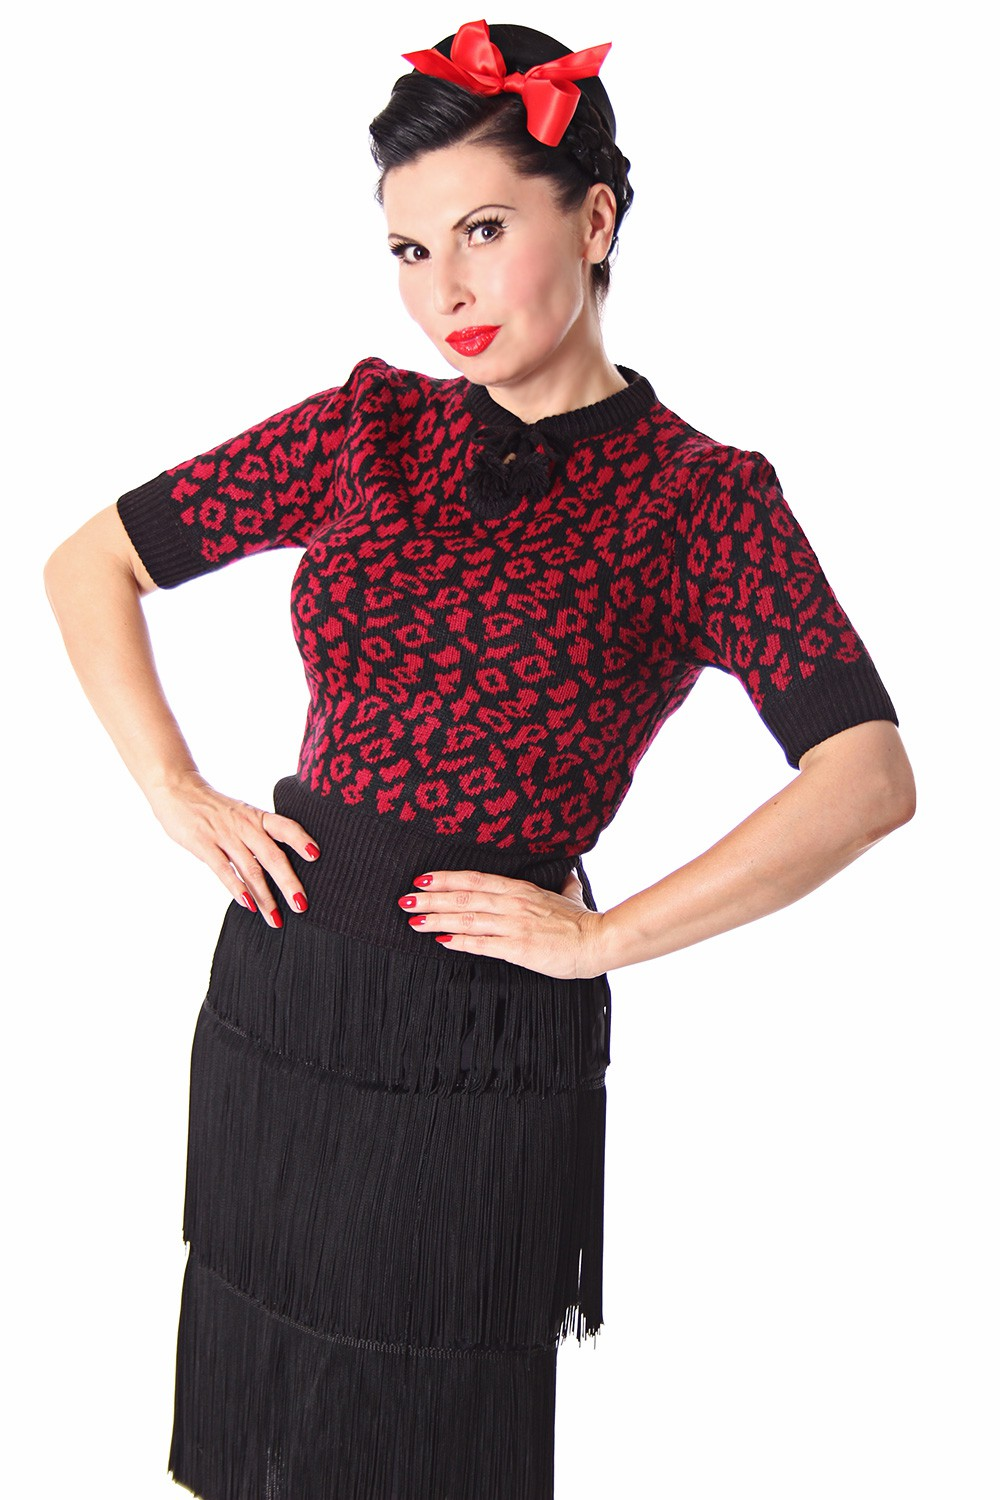 francesca 50s retro rockabilly leoparden jumper strick shirt v sugarshock frauen retro. Black Bedroom Furniture Sets. Home Design Ideas